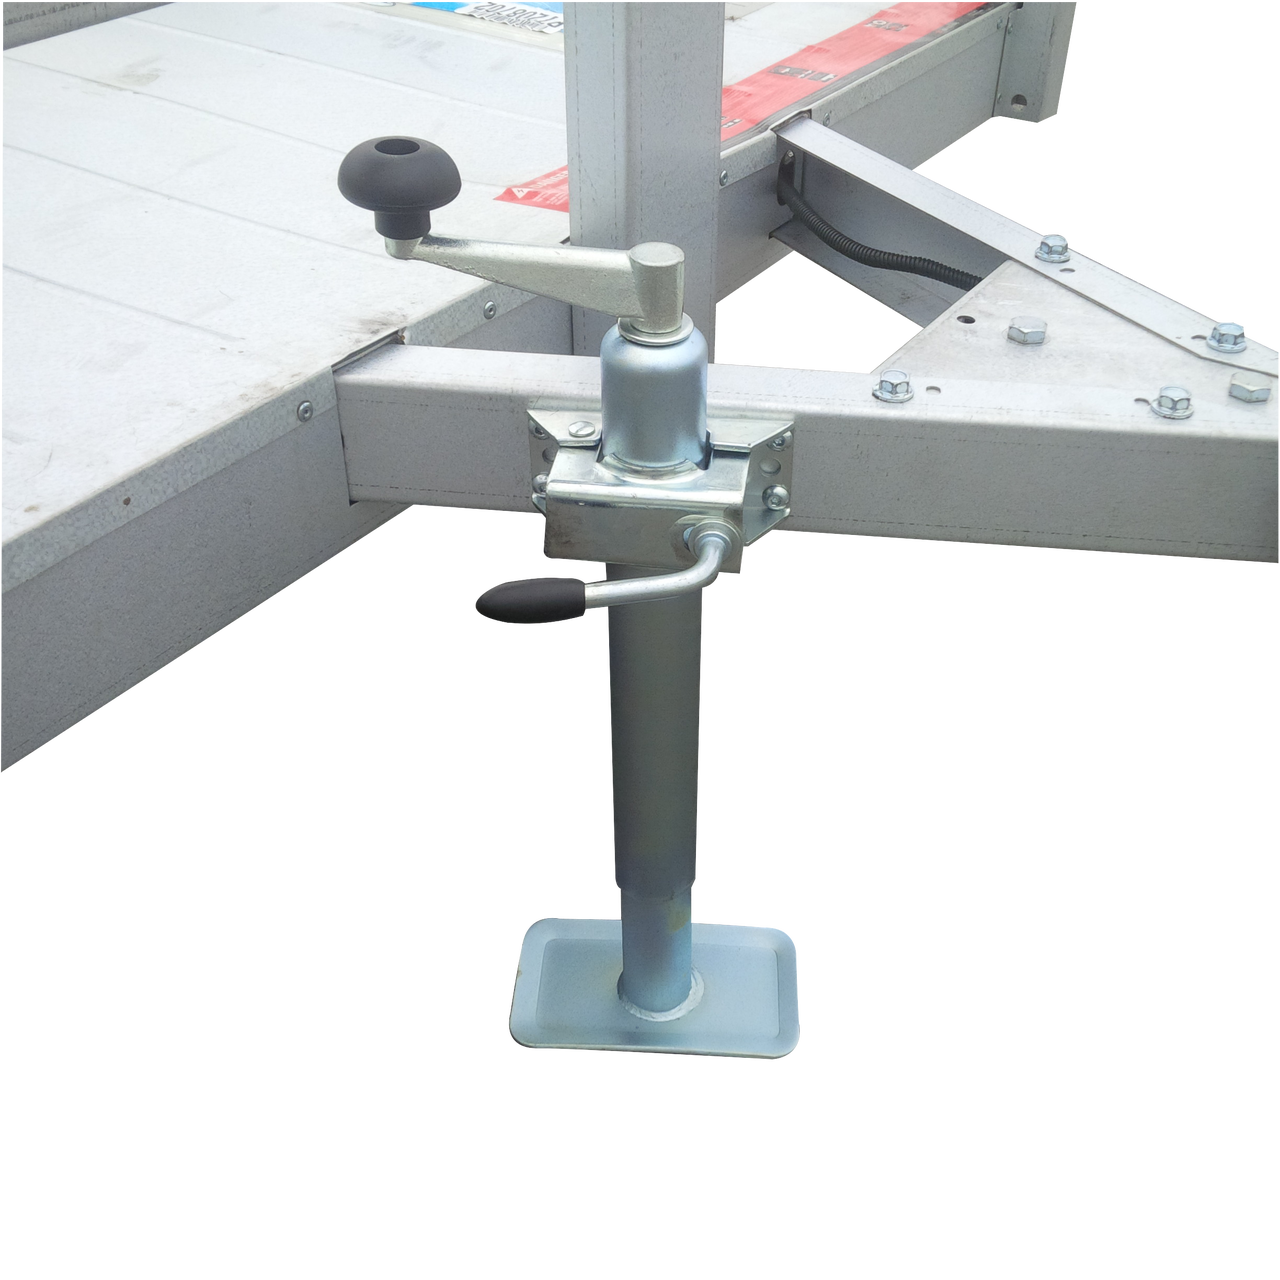 Shown installed on a 4' X 6' trailer.